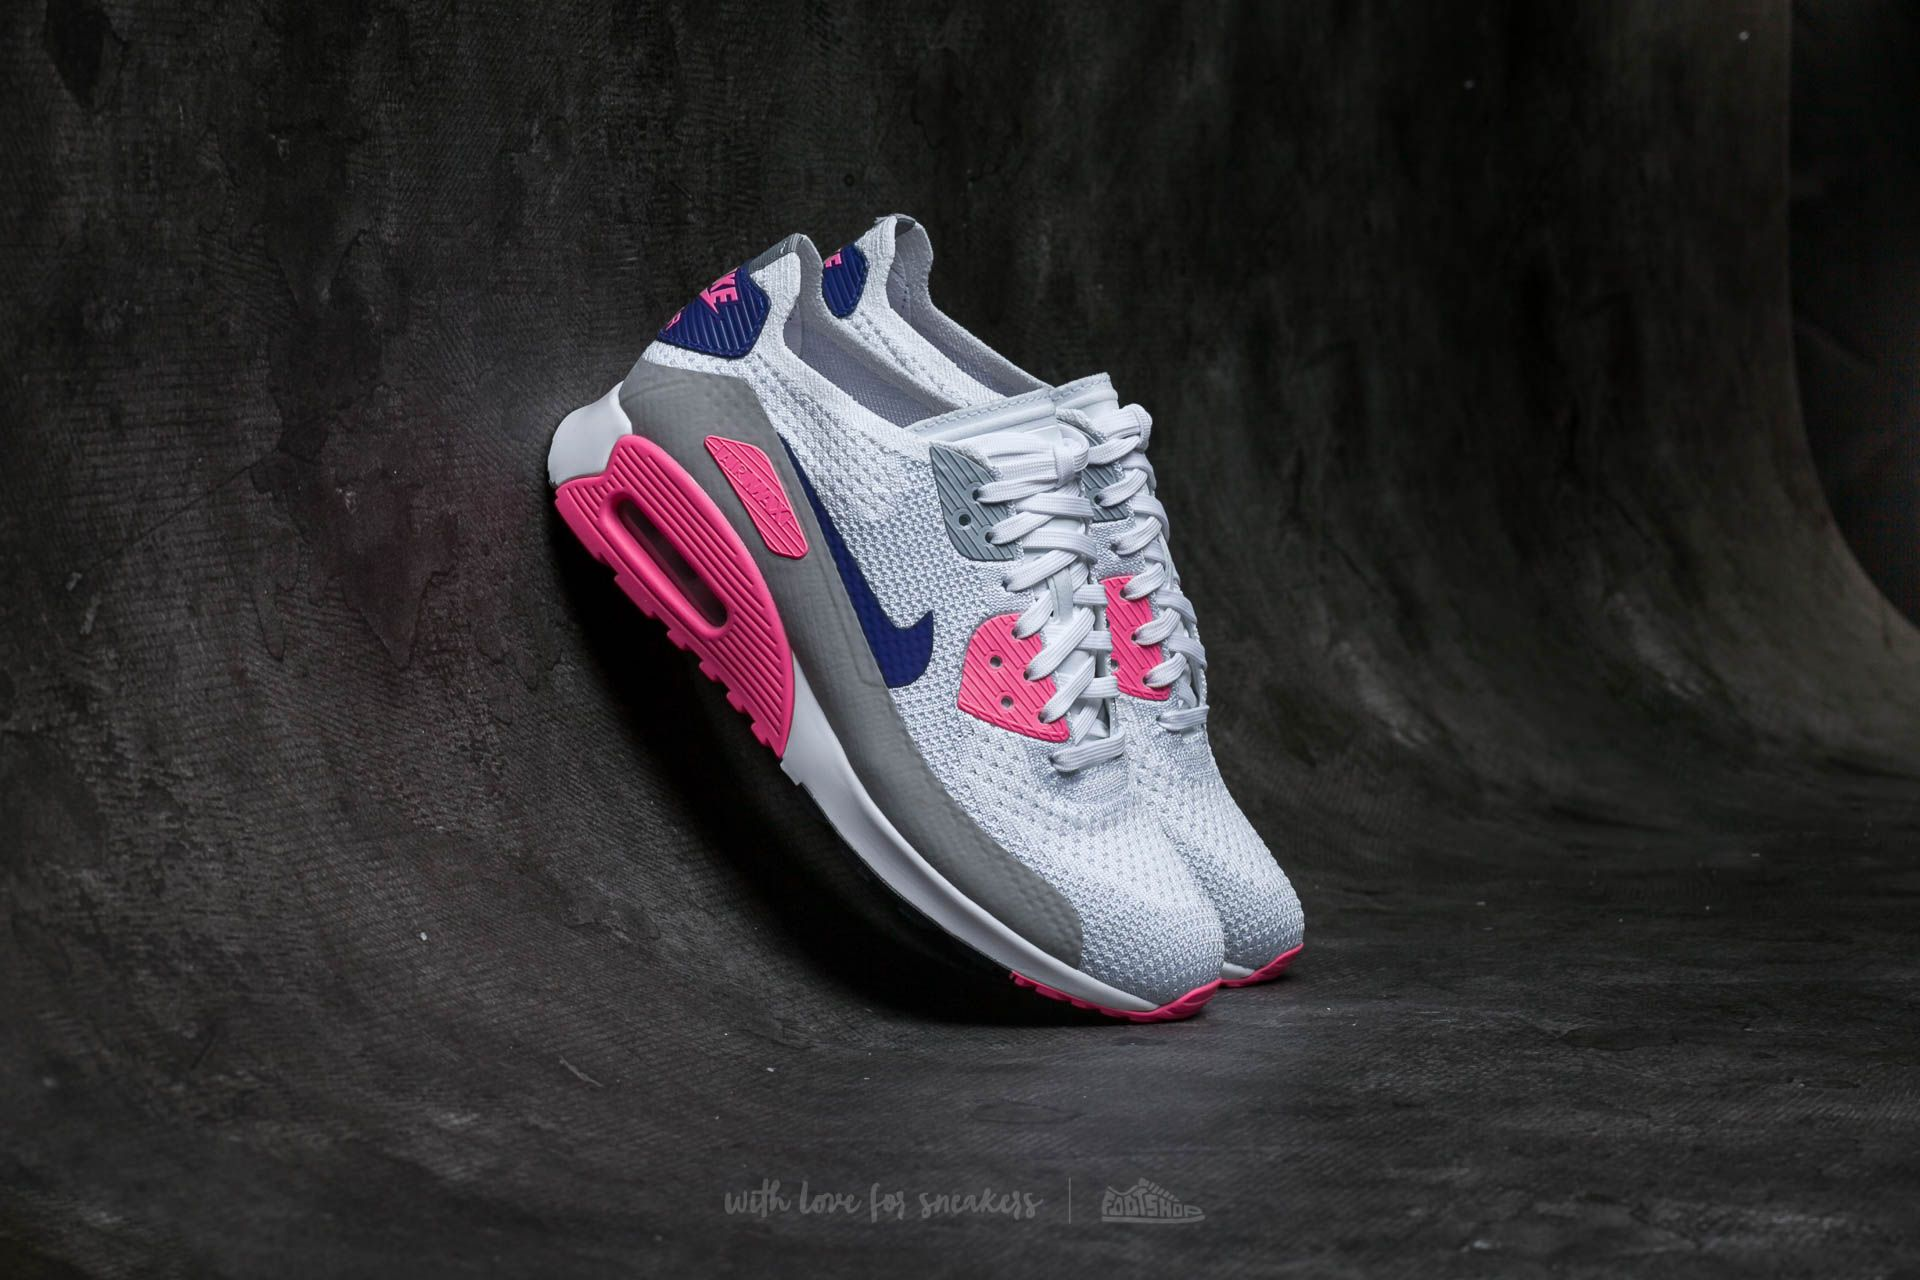 Nike W Air Max 90 Ultra 2.0 Flyknit White/ Concord-Laser Pink-Black